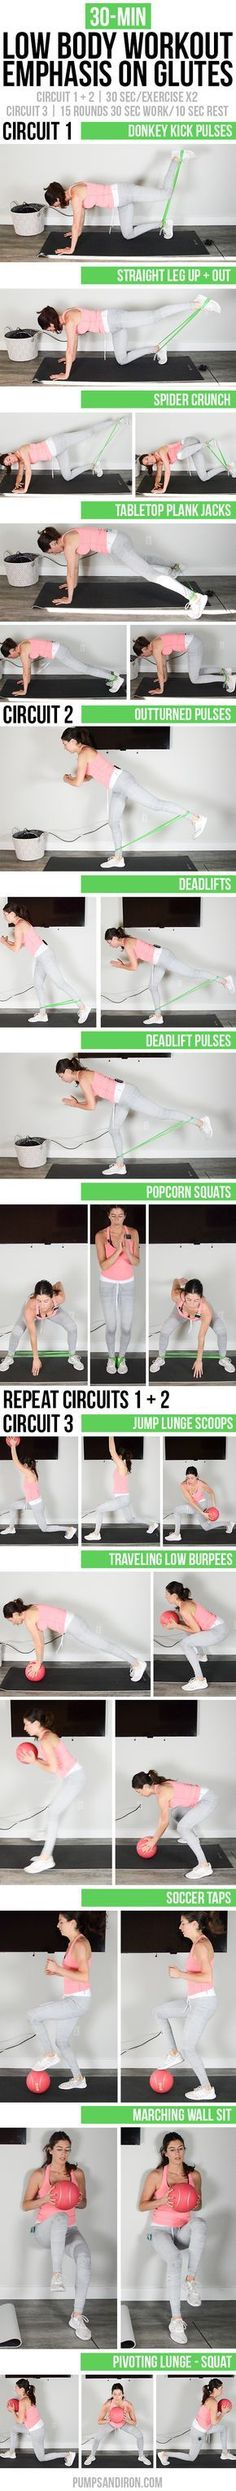 You'll need a resistance band and medicine ball for this 30-minute low body workout focusing on the glutes. Video included so you can follow along at home or the gym!   Pumps & Iron